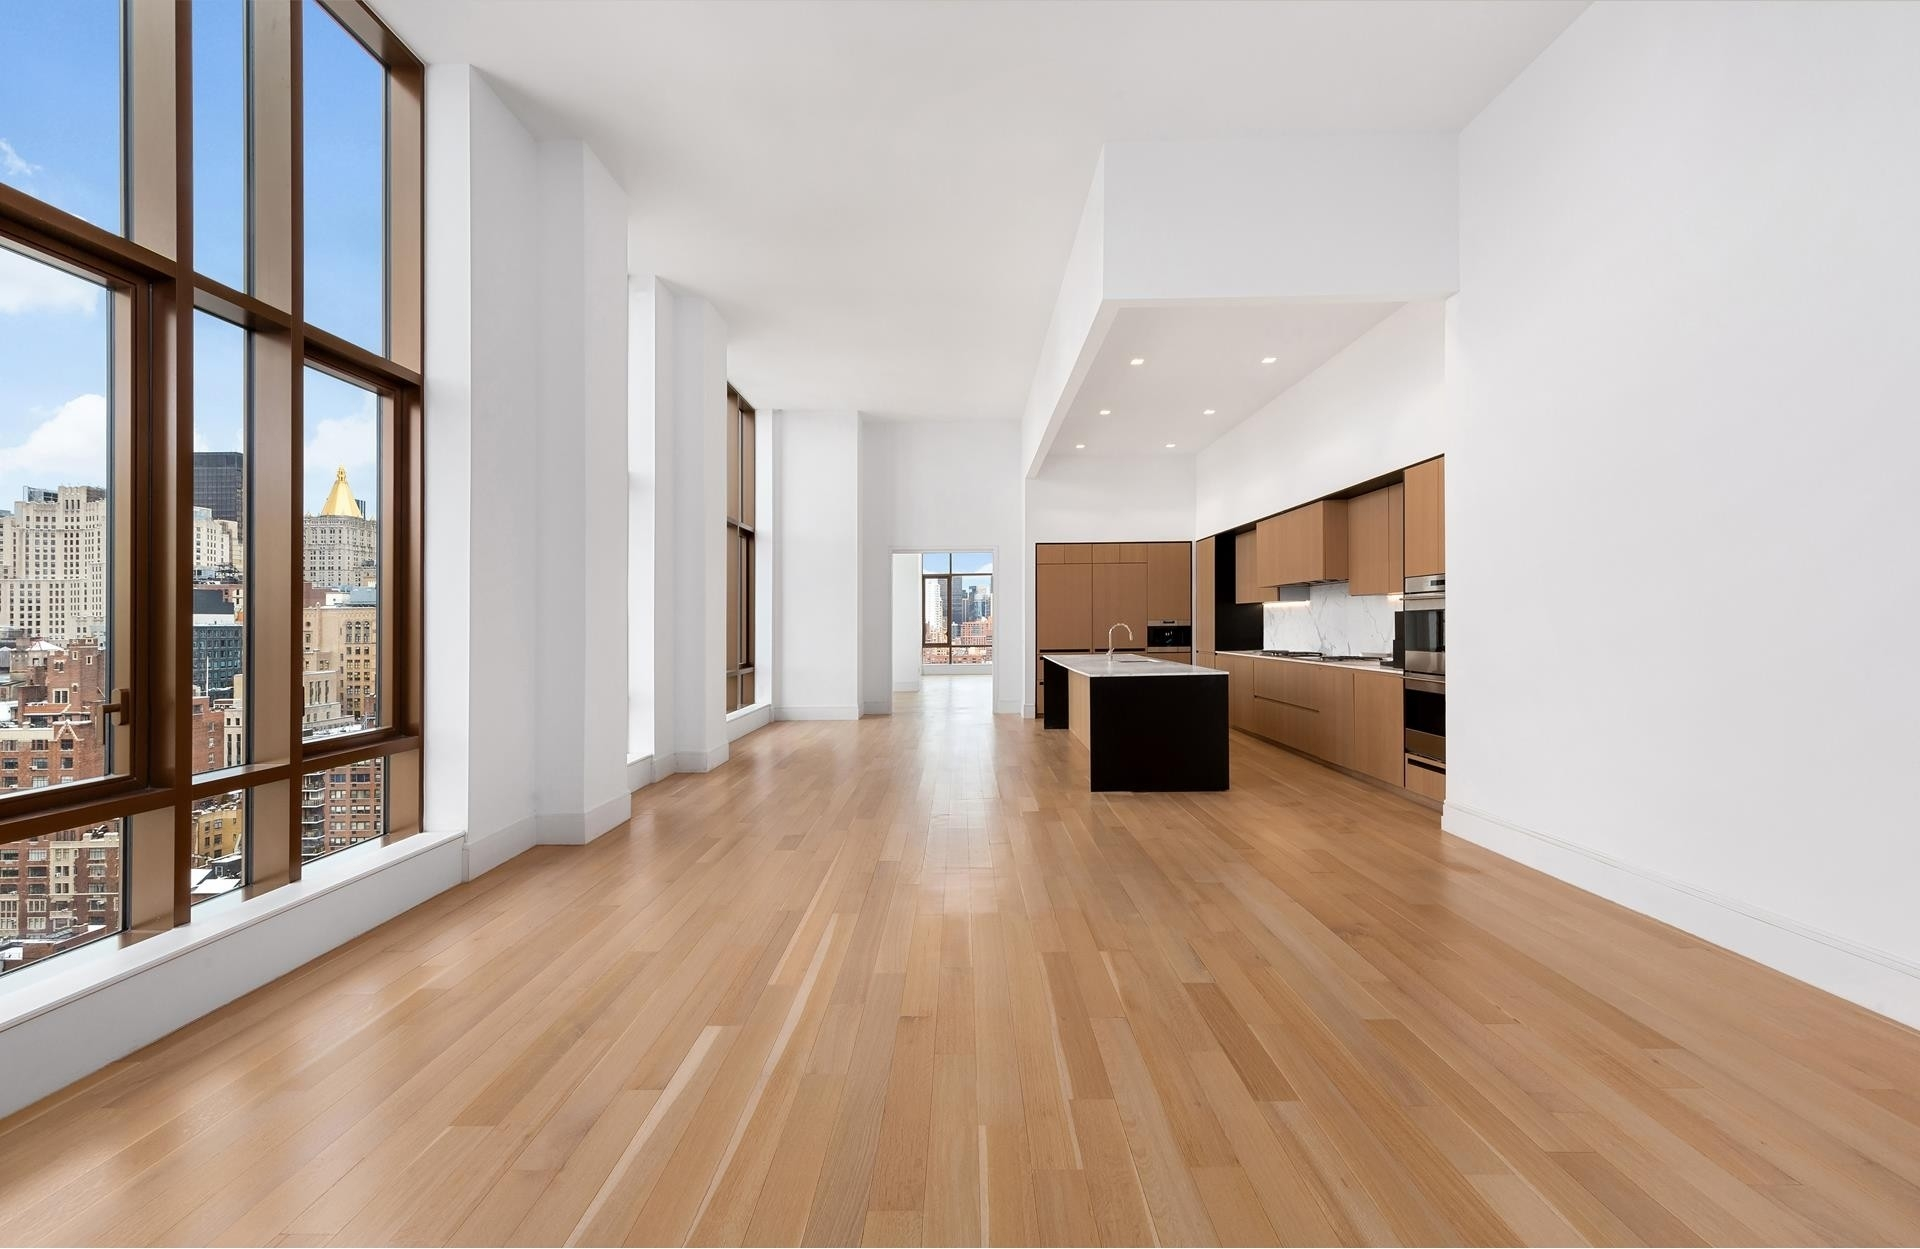 Property at Gramercy Square, 215 East 19th St, 17B Gramercy Park, New York, NY 10003